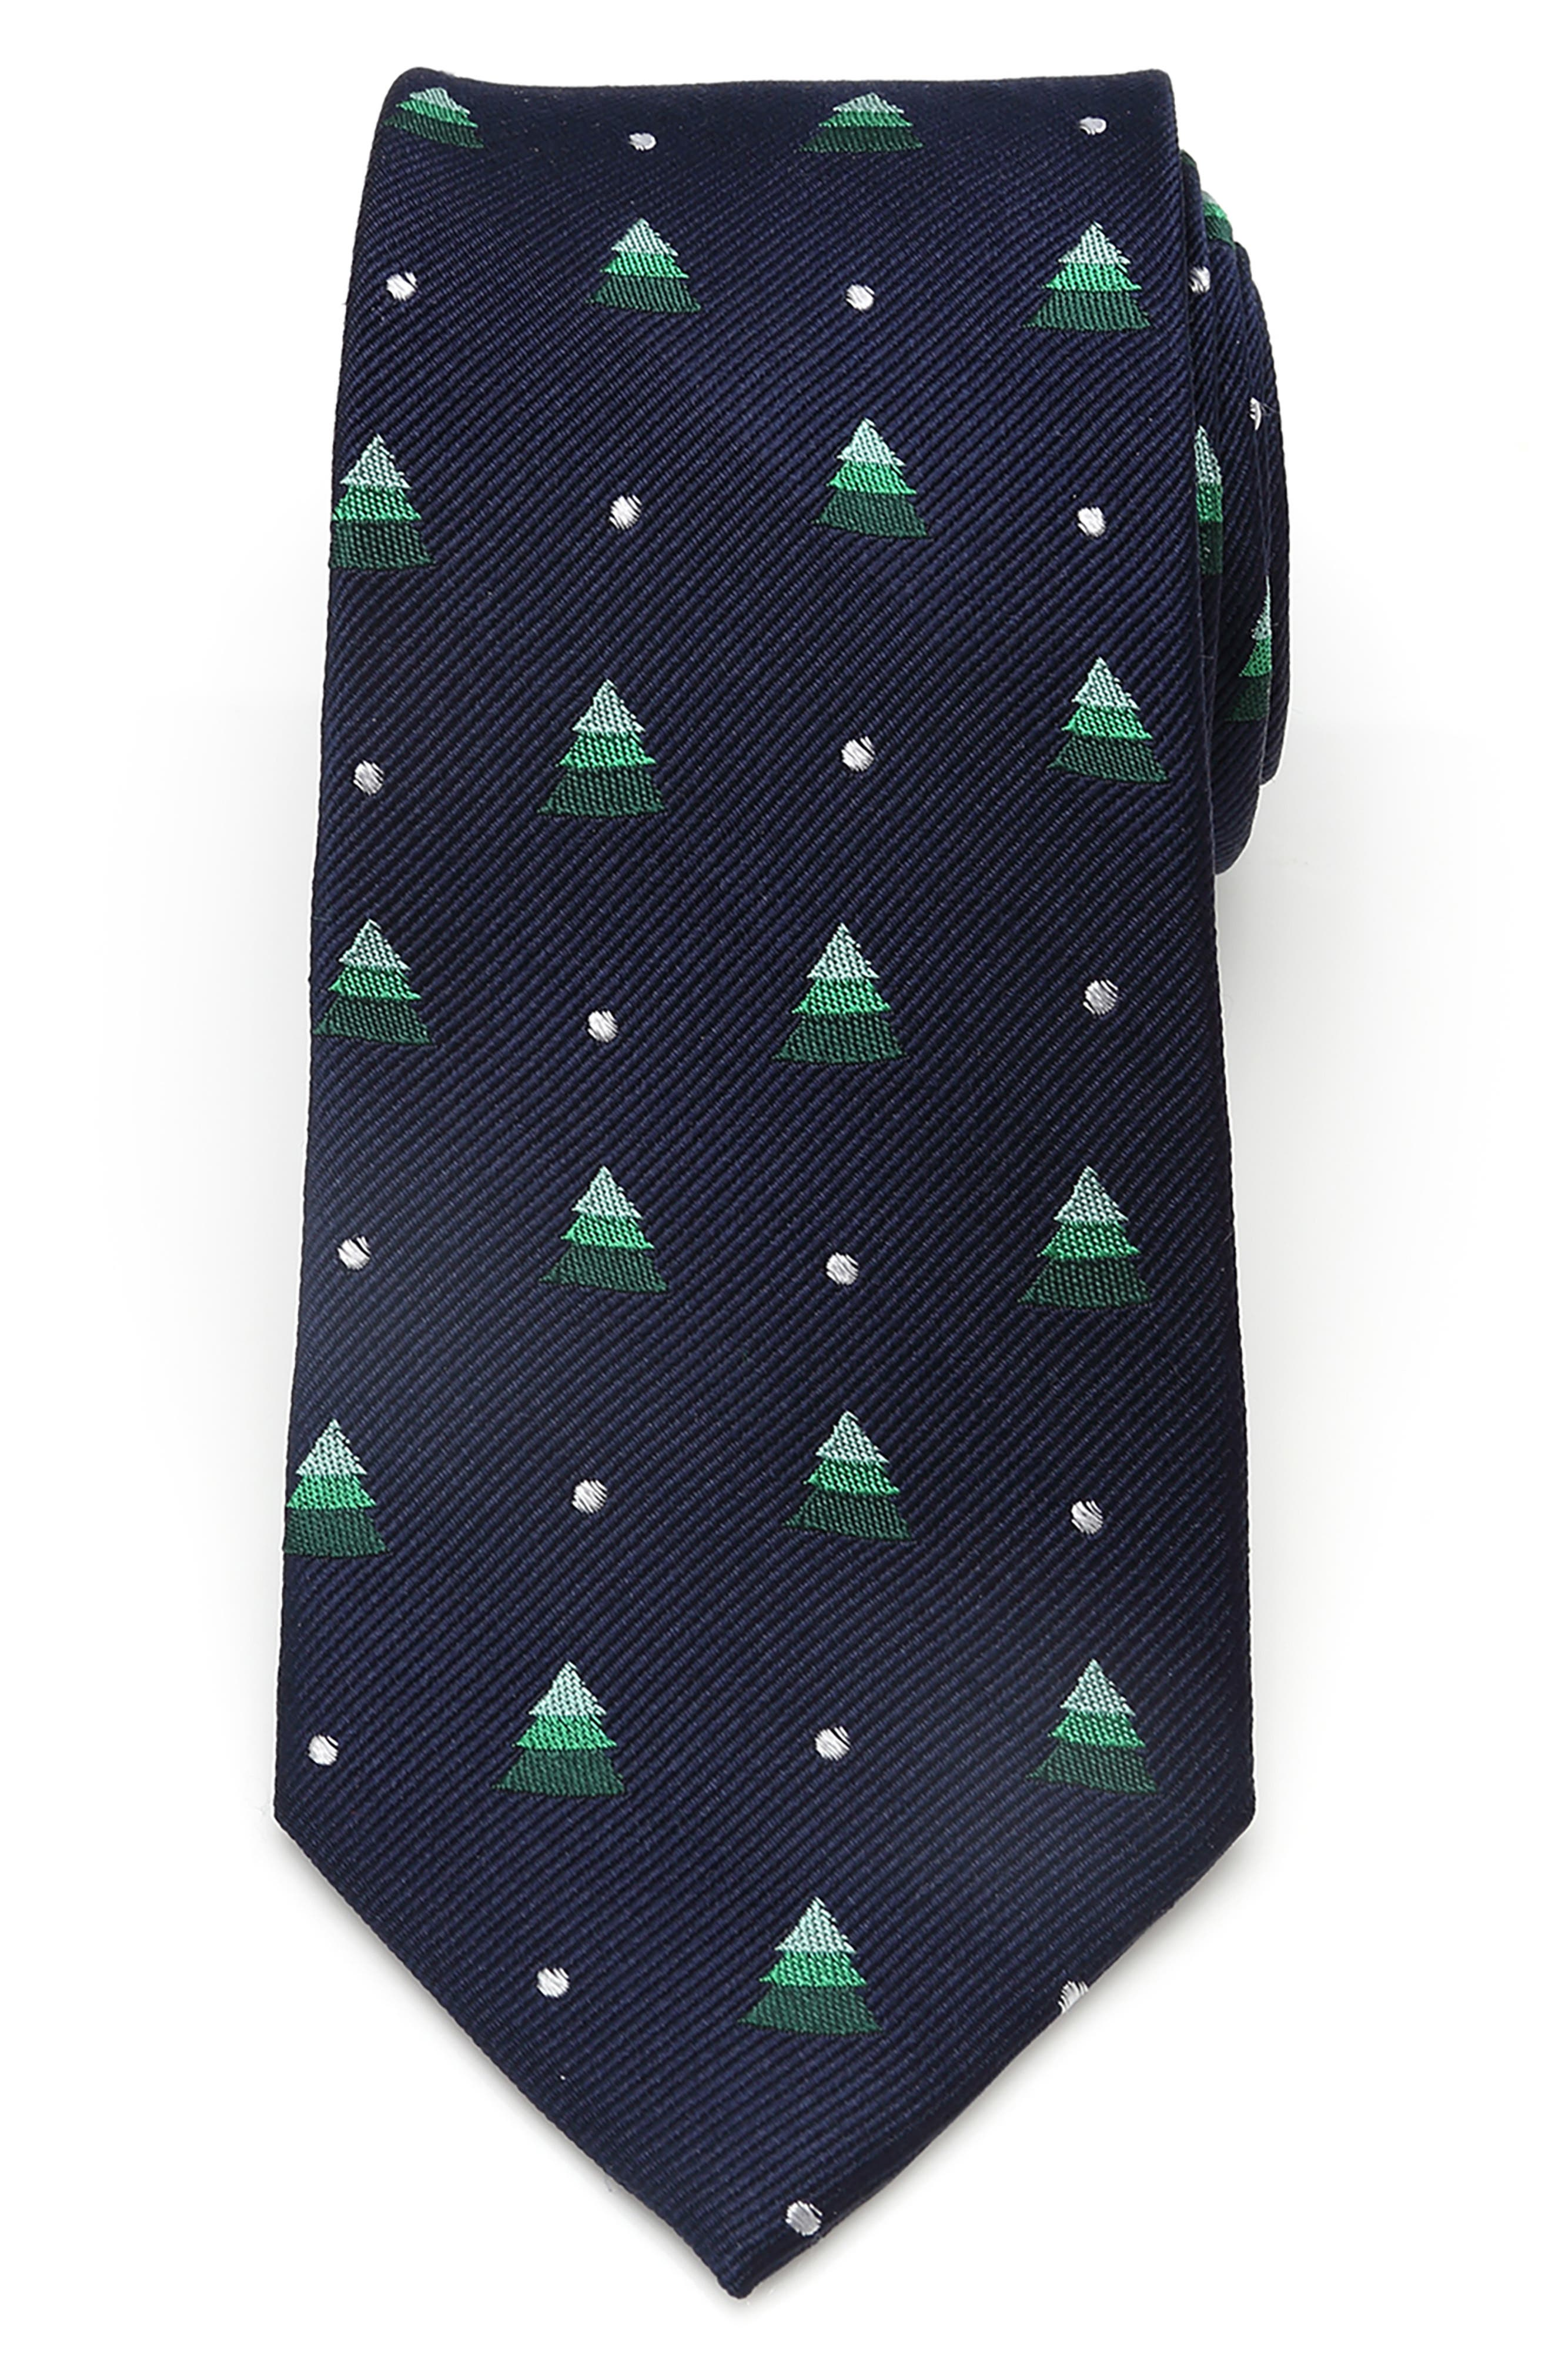 A fun holiday print touches up a charming tie cut from pure silk. Style Name: Cufflinks, Inc. Holiday Tree Silk Tie. Style Number: 5928704. Available in stores.